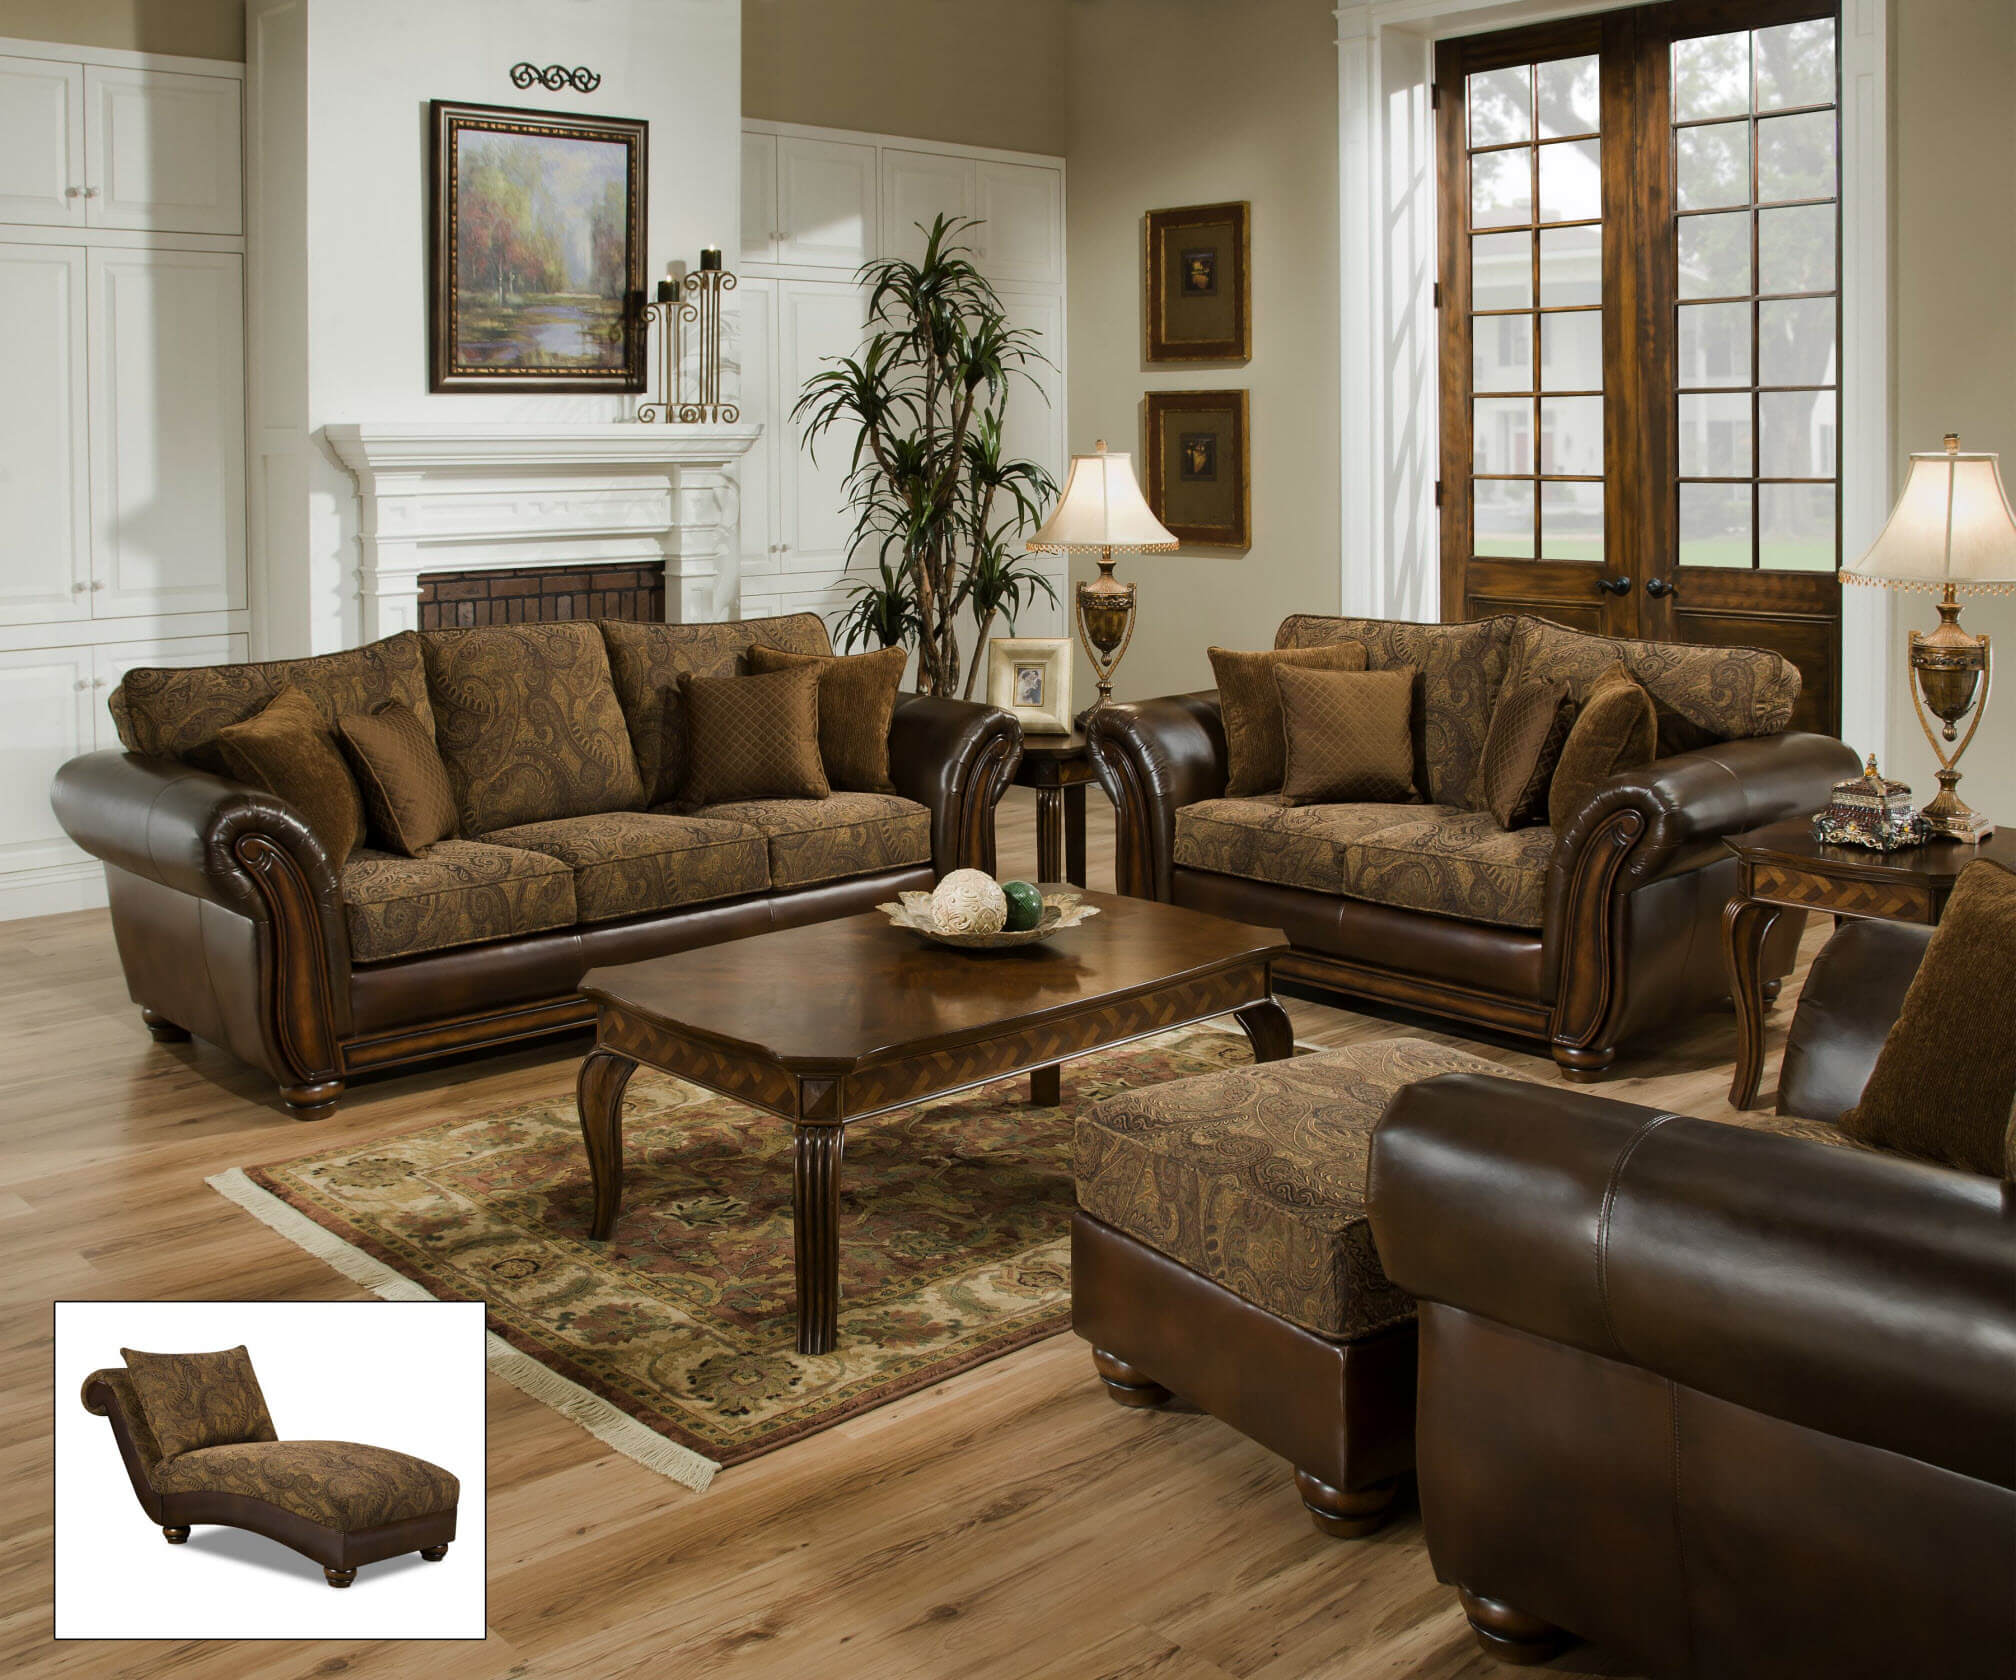 8104 Simmons Zephyr Vintage Tobacco Sofa and seat-DISCONTINUED on